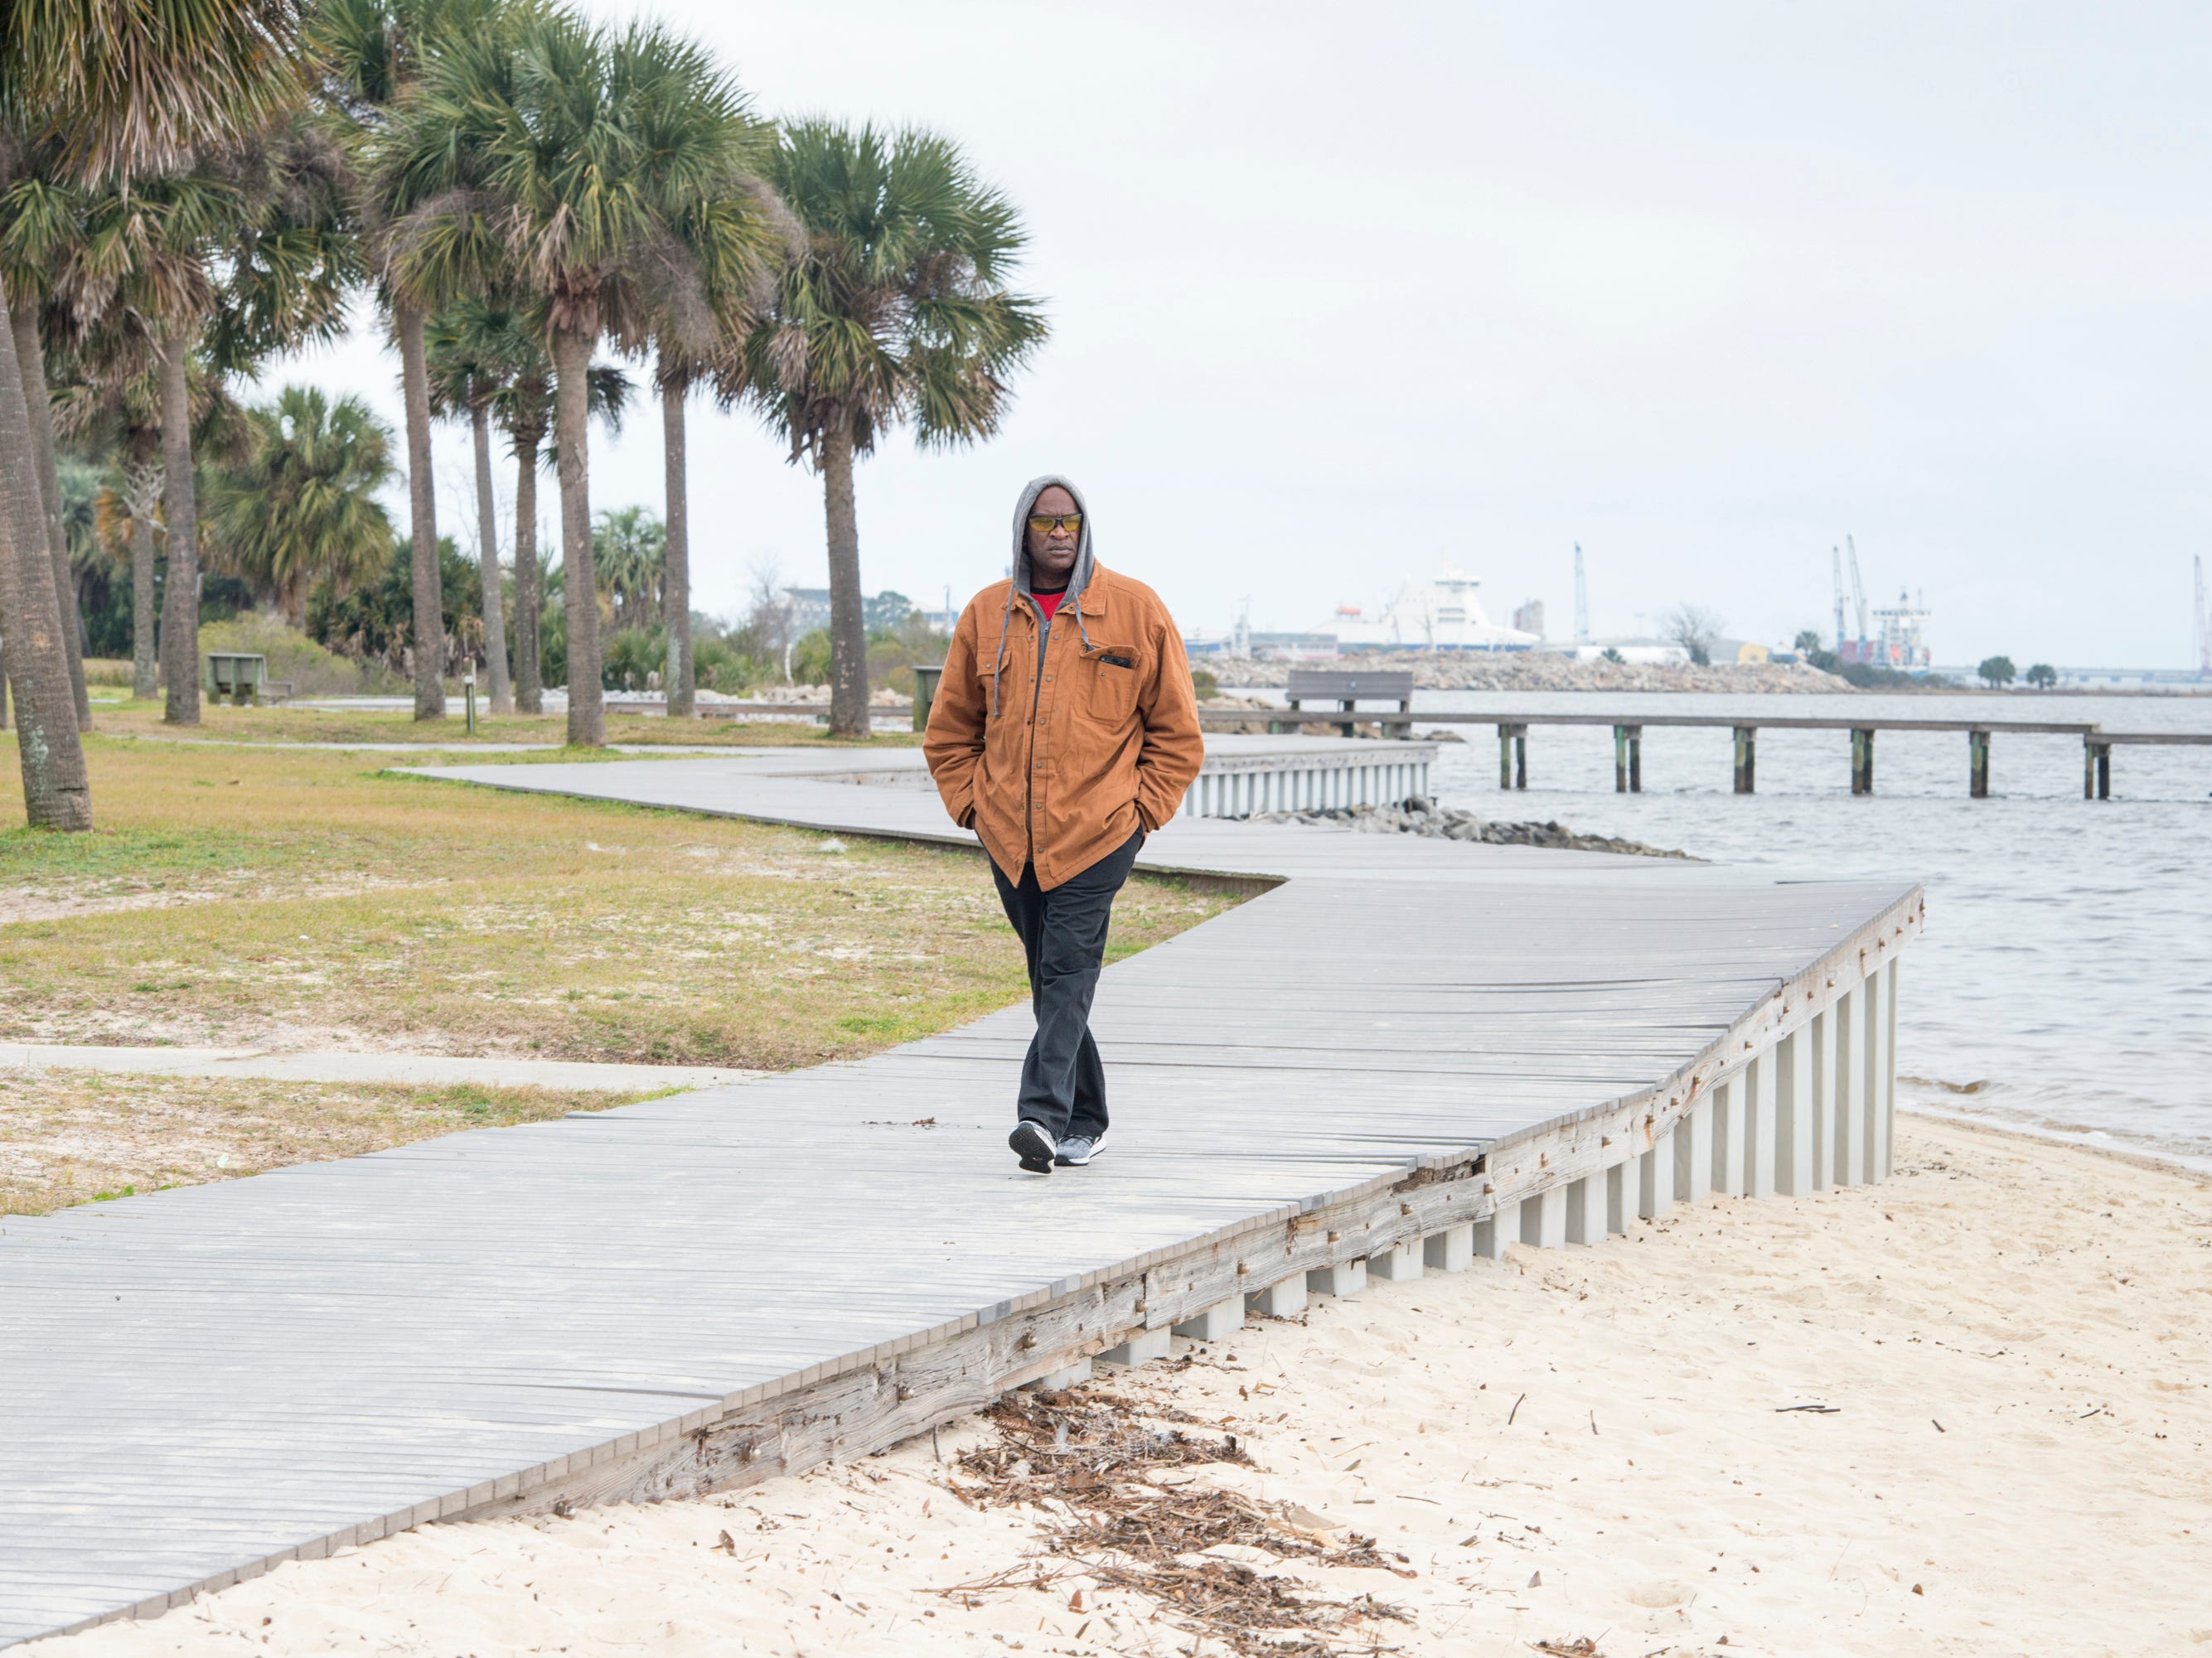 Joe Wilson walks along the boardwalk at Sanders Beach in Pensacola on Monday, February 4, 2019.  Pensacola Mayor Grover Robinson plans to ask the Pensacola City Council for $60,000 to have the landscape architecture firm SCAPE study ways to improvement access, connectivity and resiliency along the waterfront between Joe Patti's Seafood to Bayou Chico. If approved, the funding would extend the boundaries of an existing SCAPE funded by Pensacola entrepreneur and philanthropist Quint Studer.